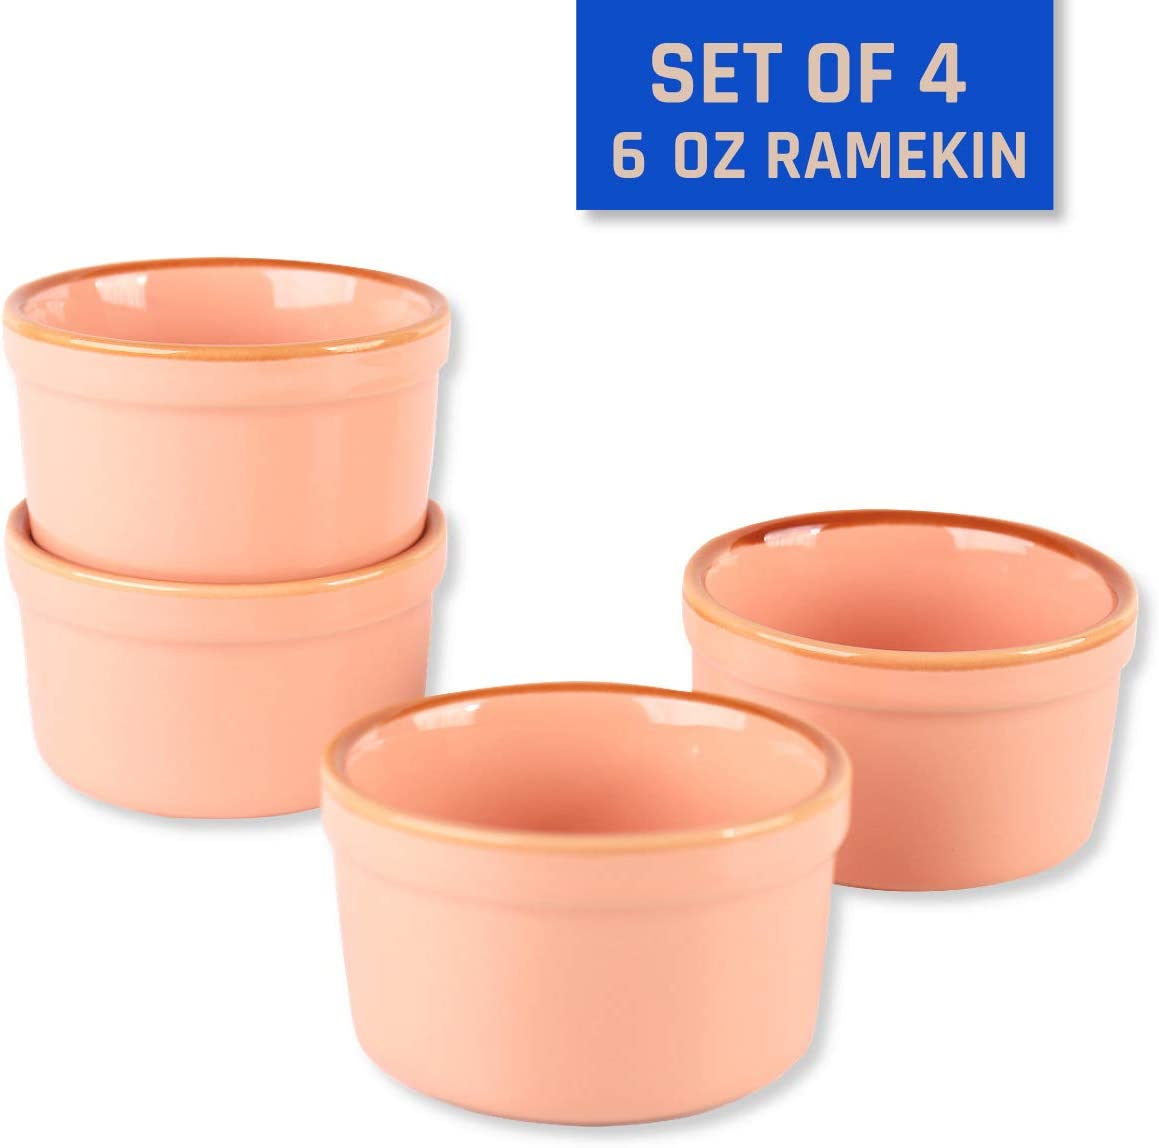 KVV Ceramics Ramekin Set Of 4 (6 oz/ 200ml) Porcelain Souffle Dish Ramekins for Creme Brulee Pudding Oven Safe, Classic Style Ramekins Bowls for Baking (Ramekin Pink)